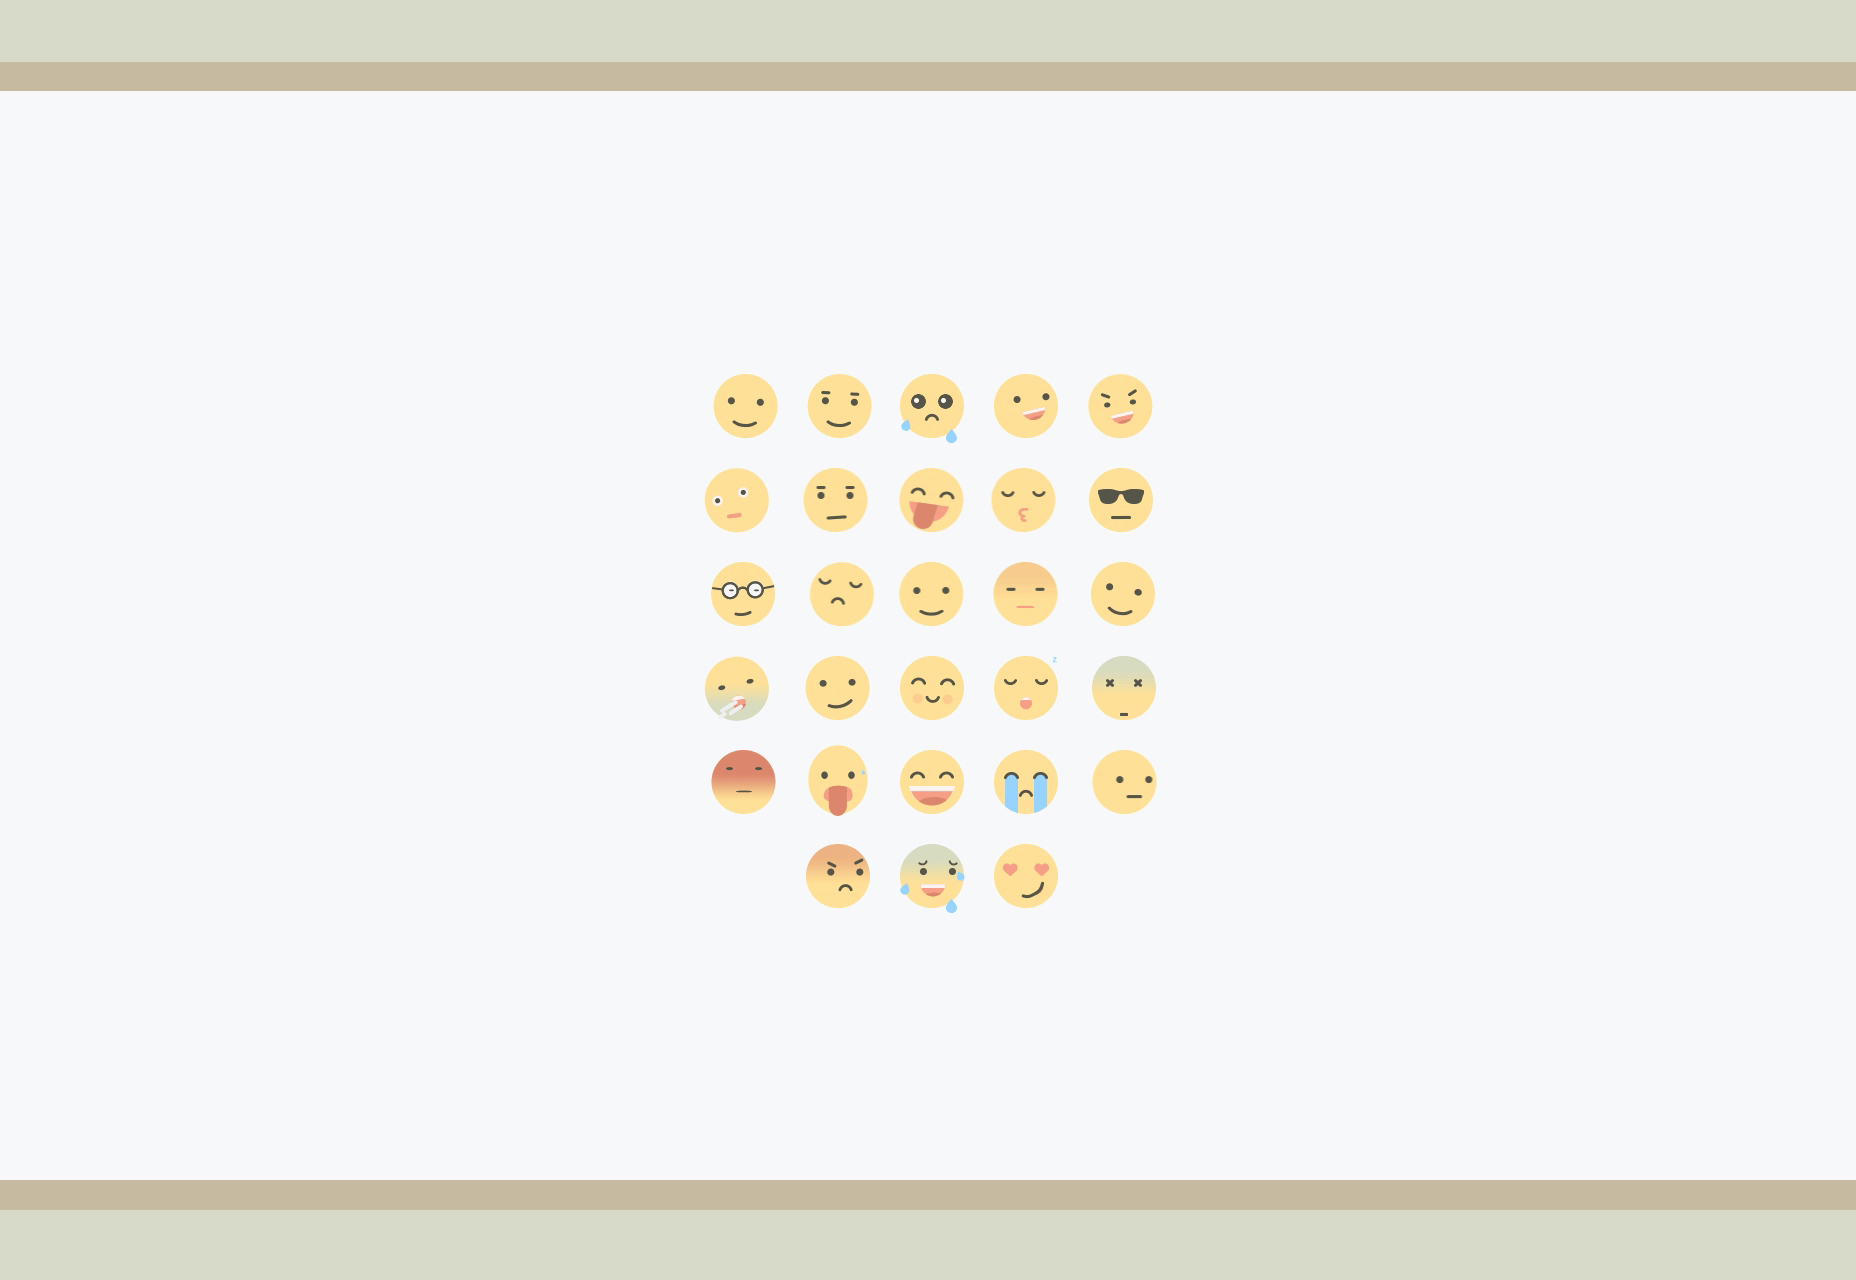 Adobe After Effects Animated Flat Emojis